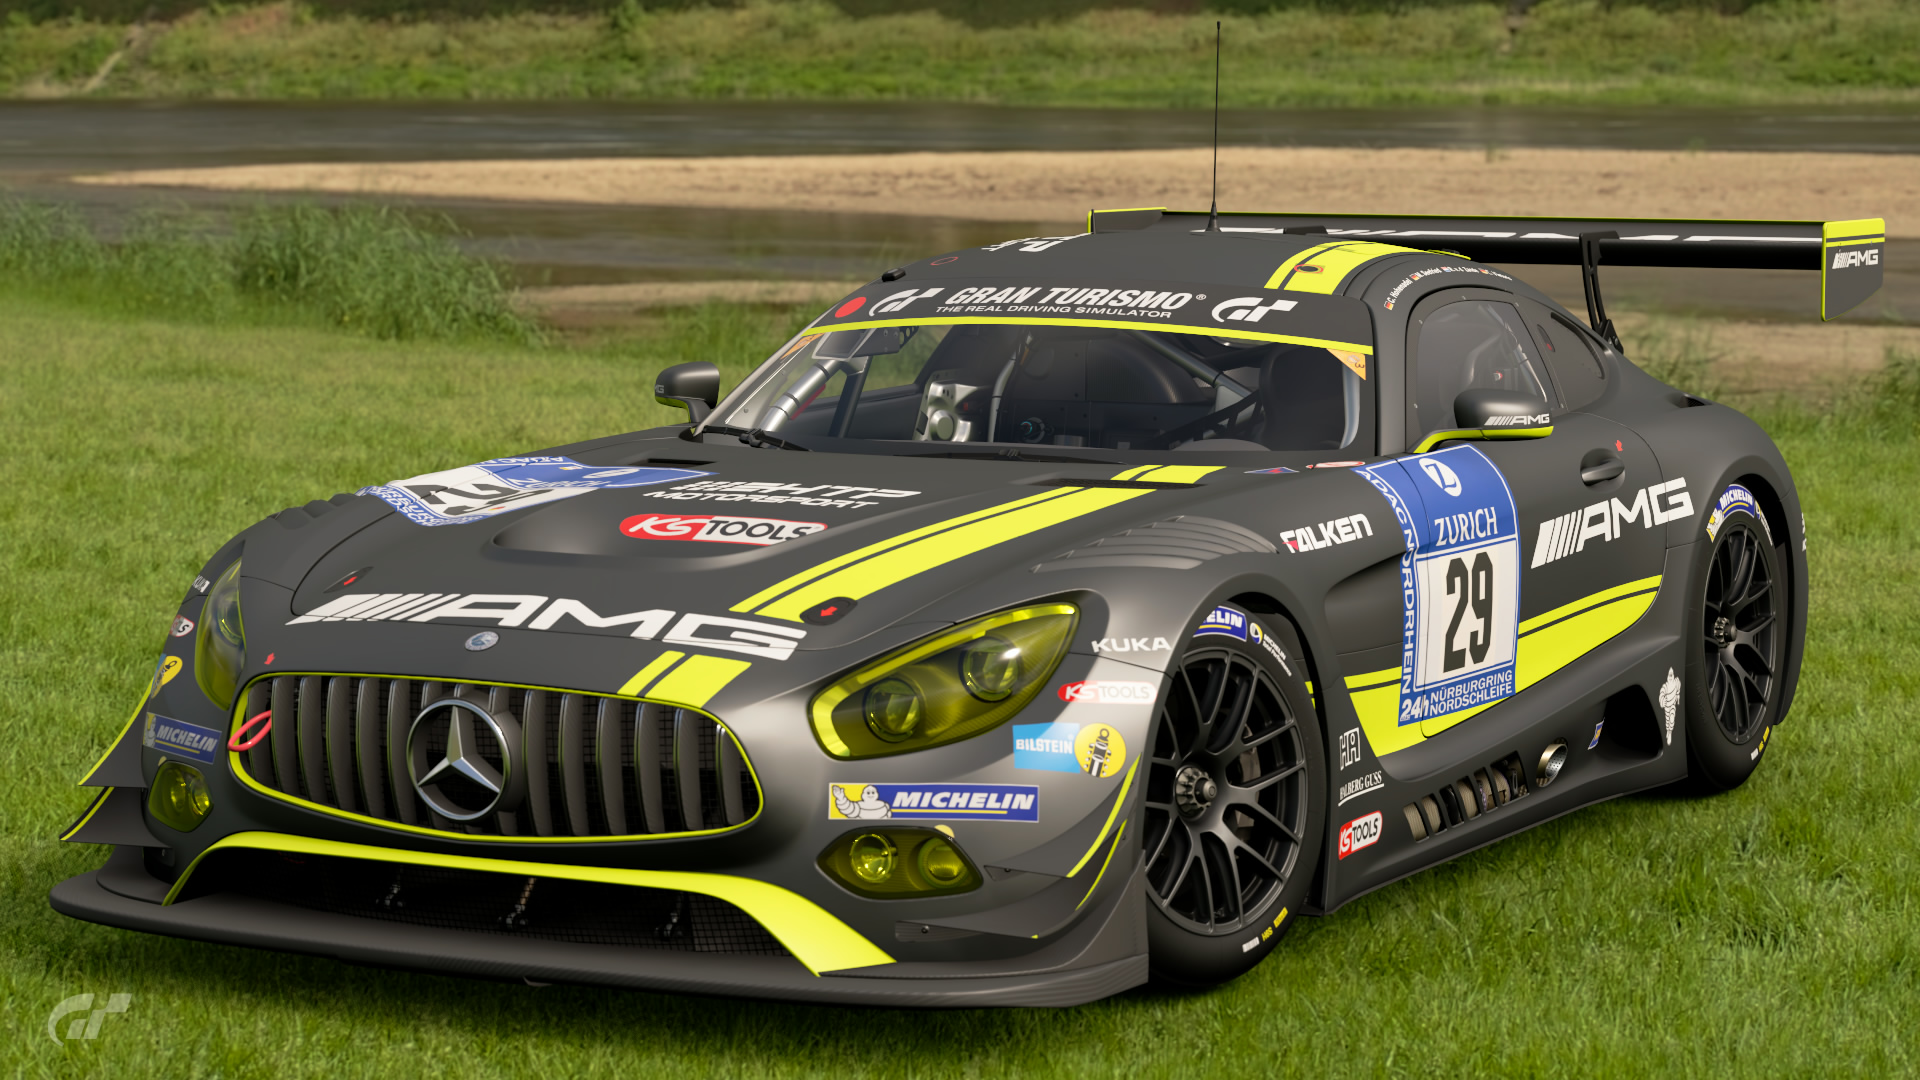 Drivers Hurt In Huge Bentley And Aston Martin Sportscar Crash 741426 besides Watch as well 26592 Forza 7 Met En Route Un Nouveau Patch Et Pack De Voitures Avec La Bugatti Chiron in addition Mercedes AMG GT3  AMG Team HTP Motorsport   2716 moreover 2013 N24h Aston Martin Post Race Review. on aston martin vantage gt3